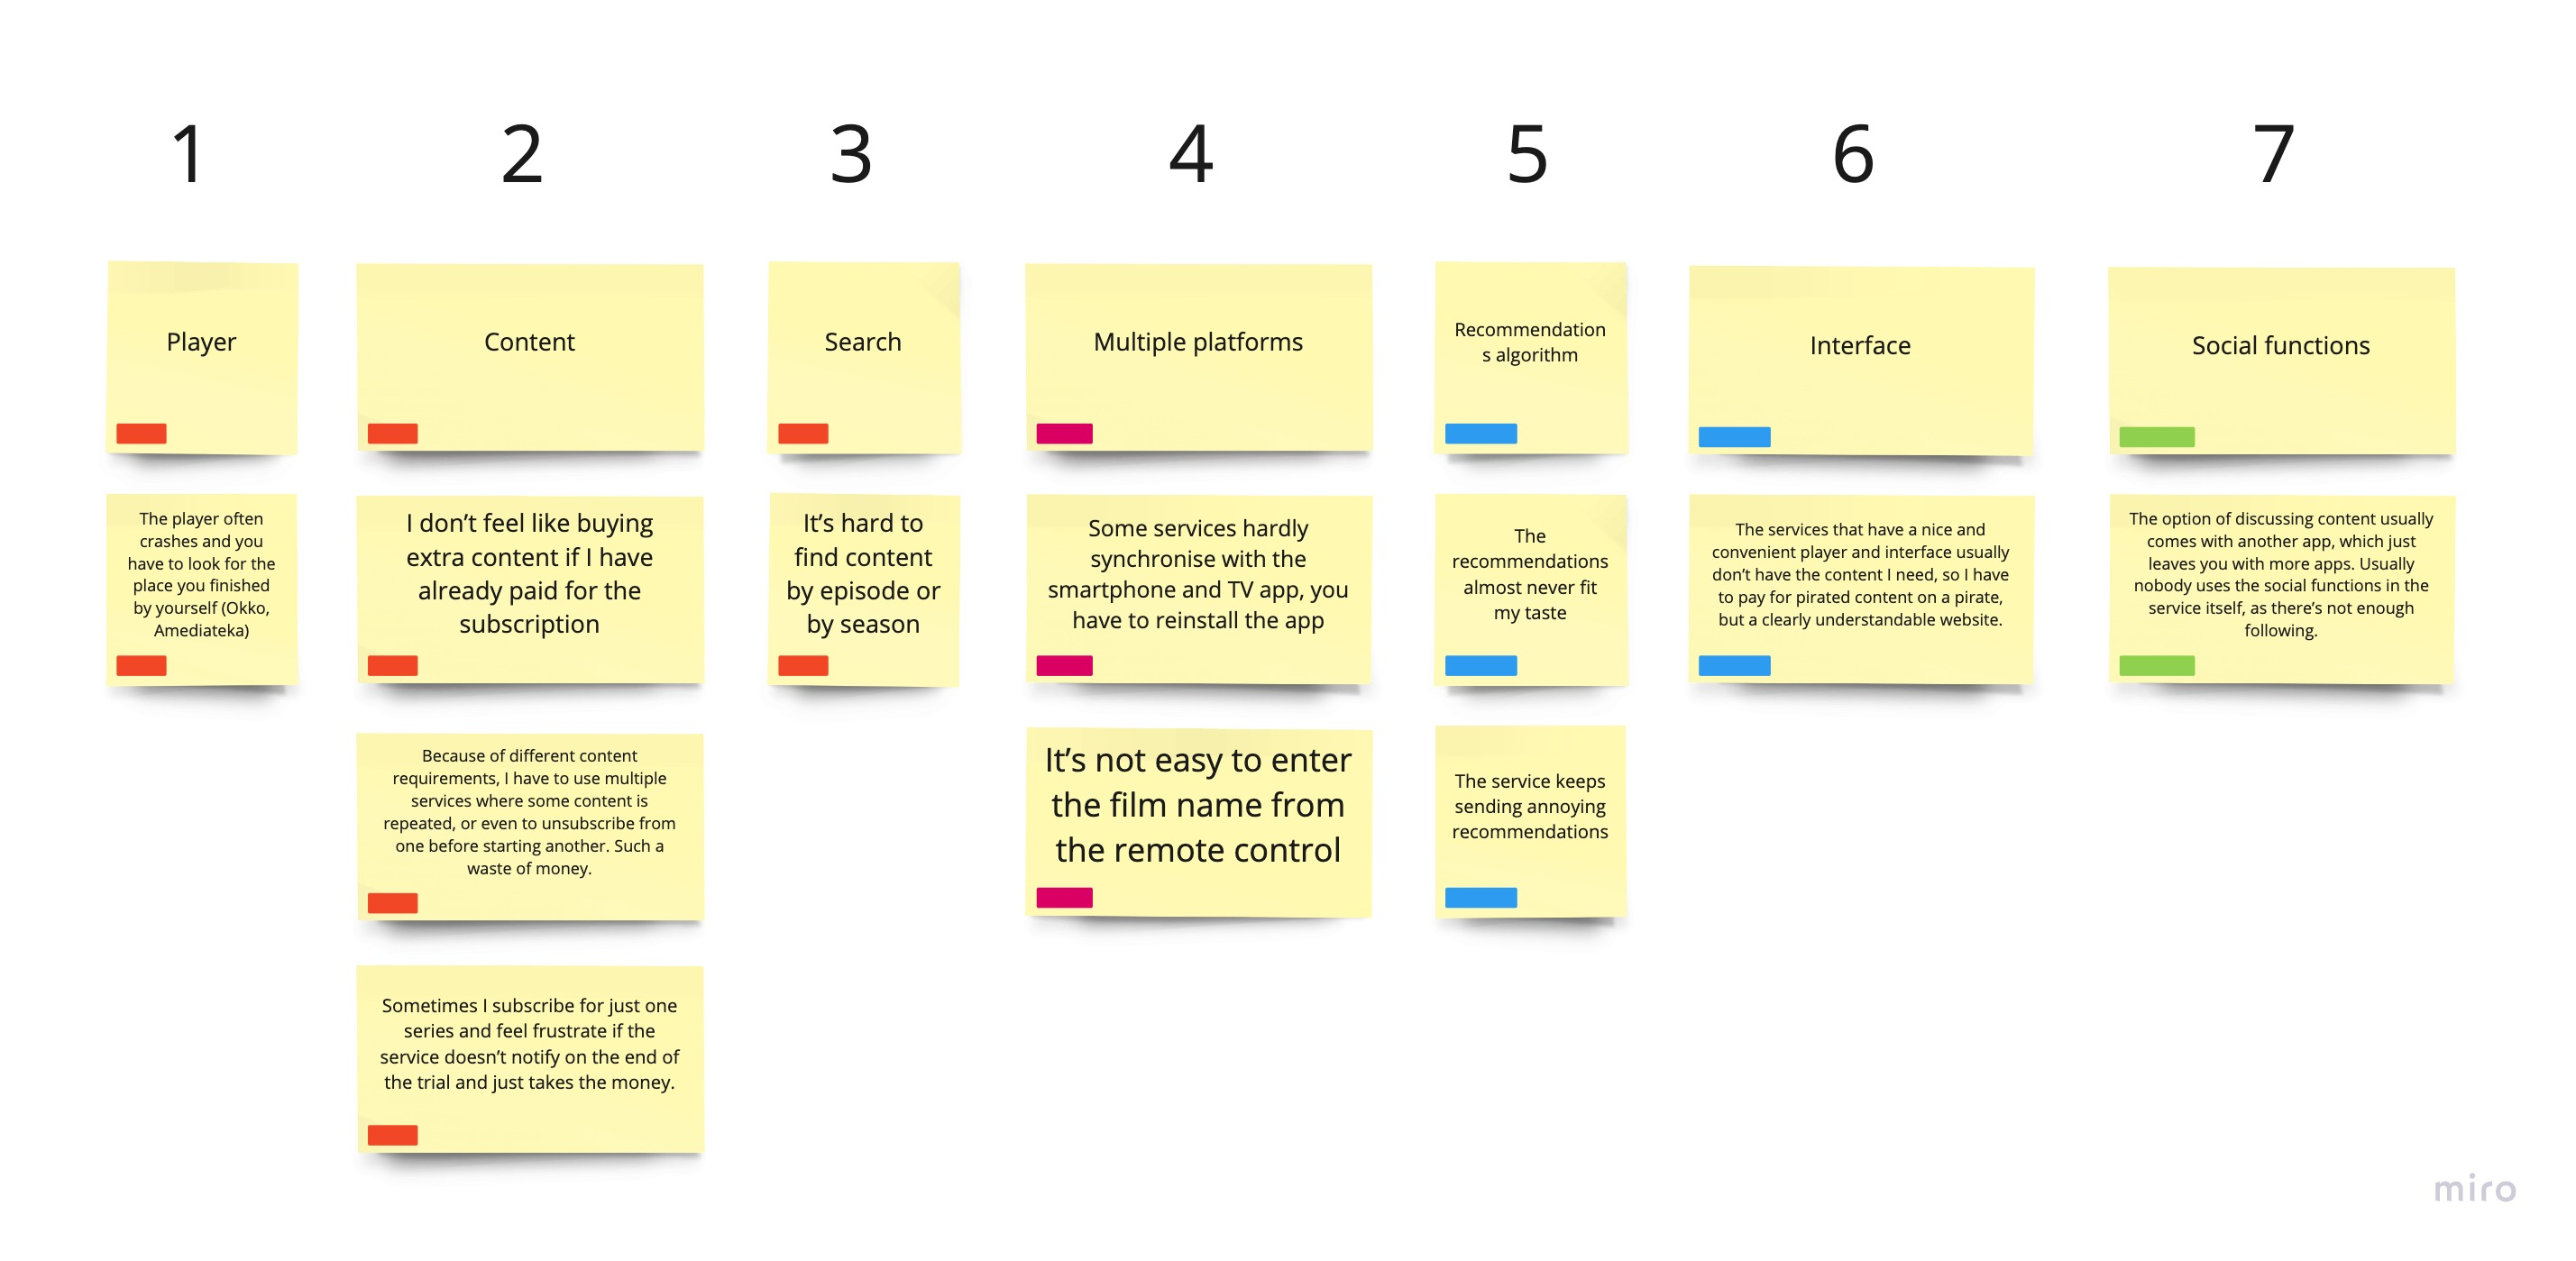 Sorting service problems and features by frequency and priority(1.Blockers, 2.Important, 3.Useful, 4.Nice to have)